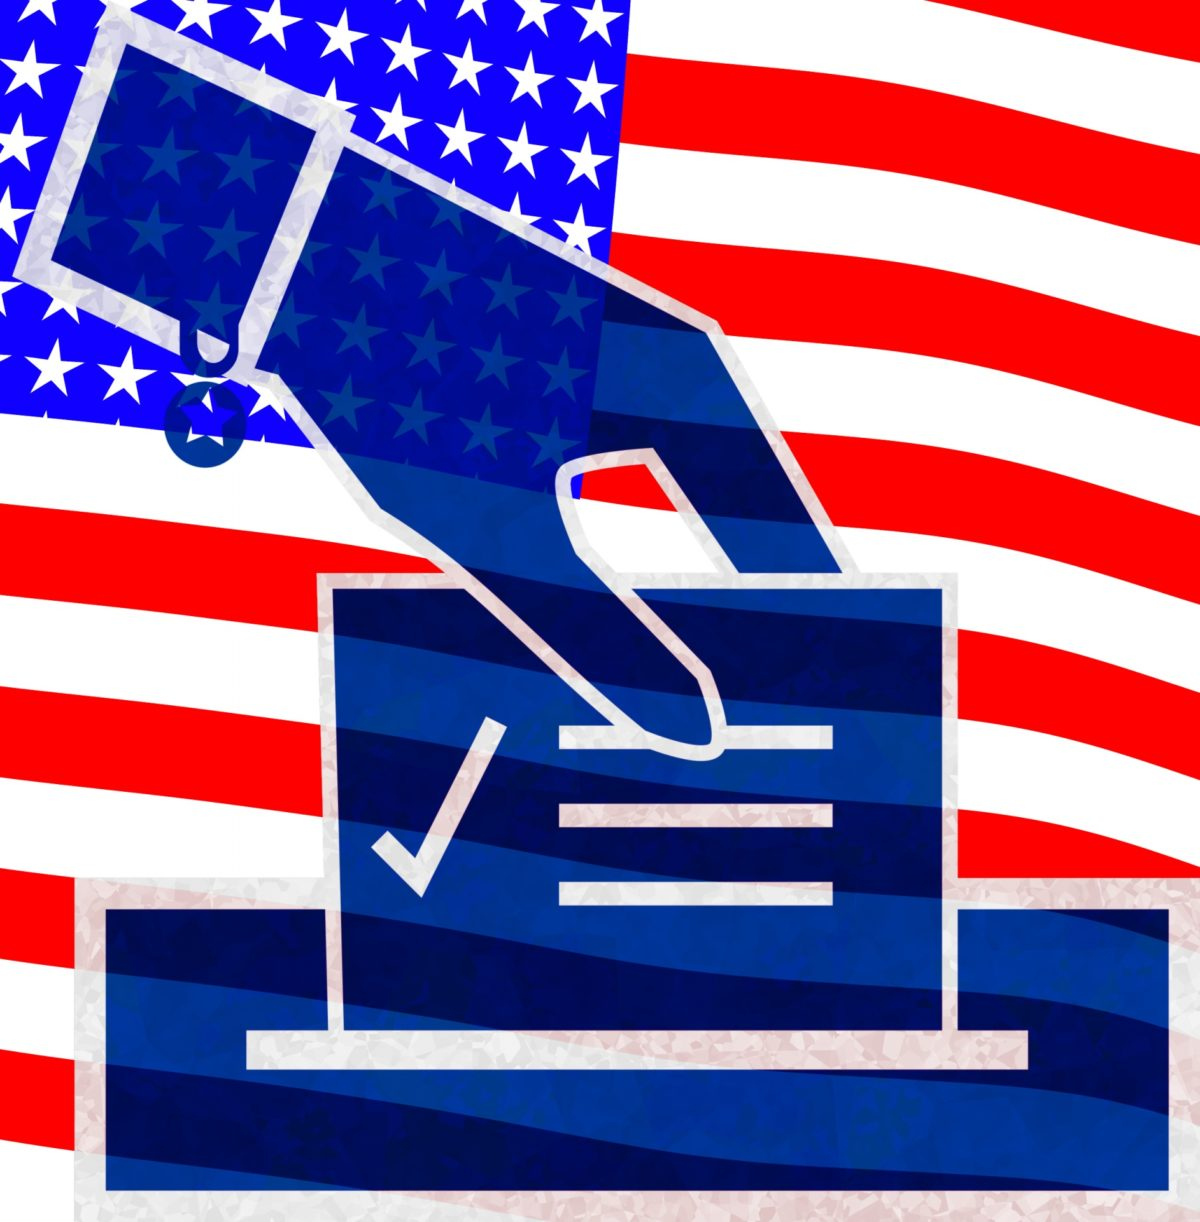 From The Ballot Box: Post-Midterm Election Analysis